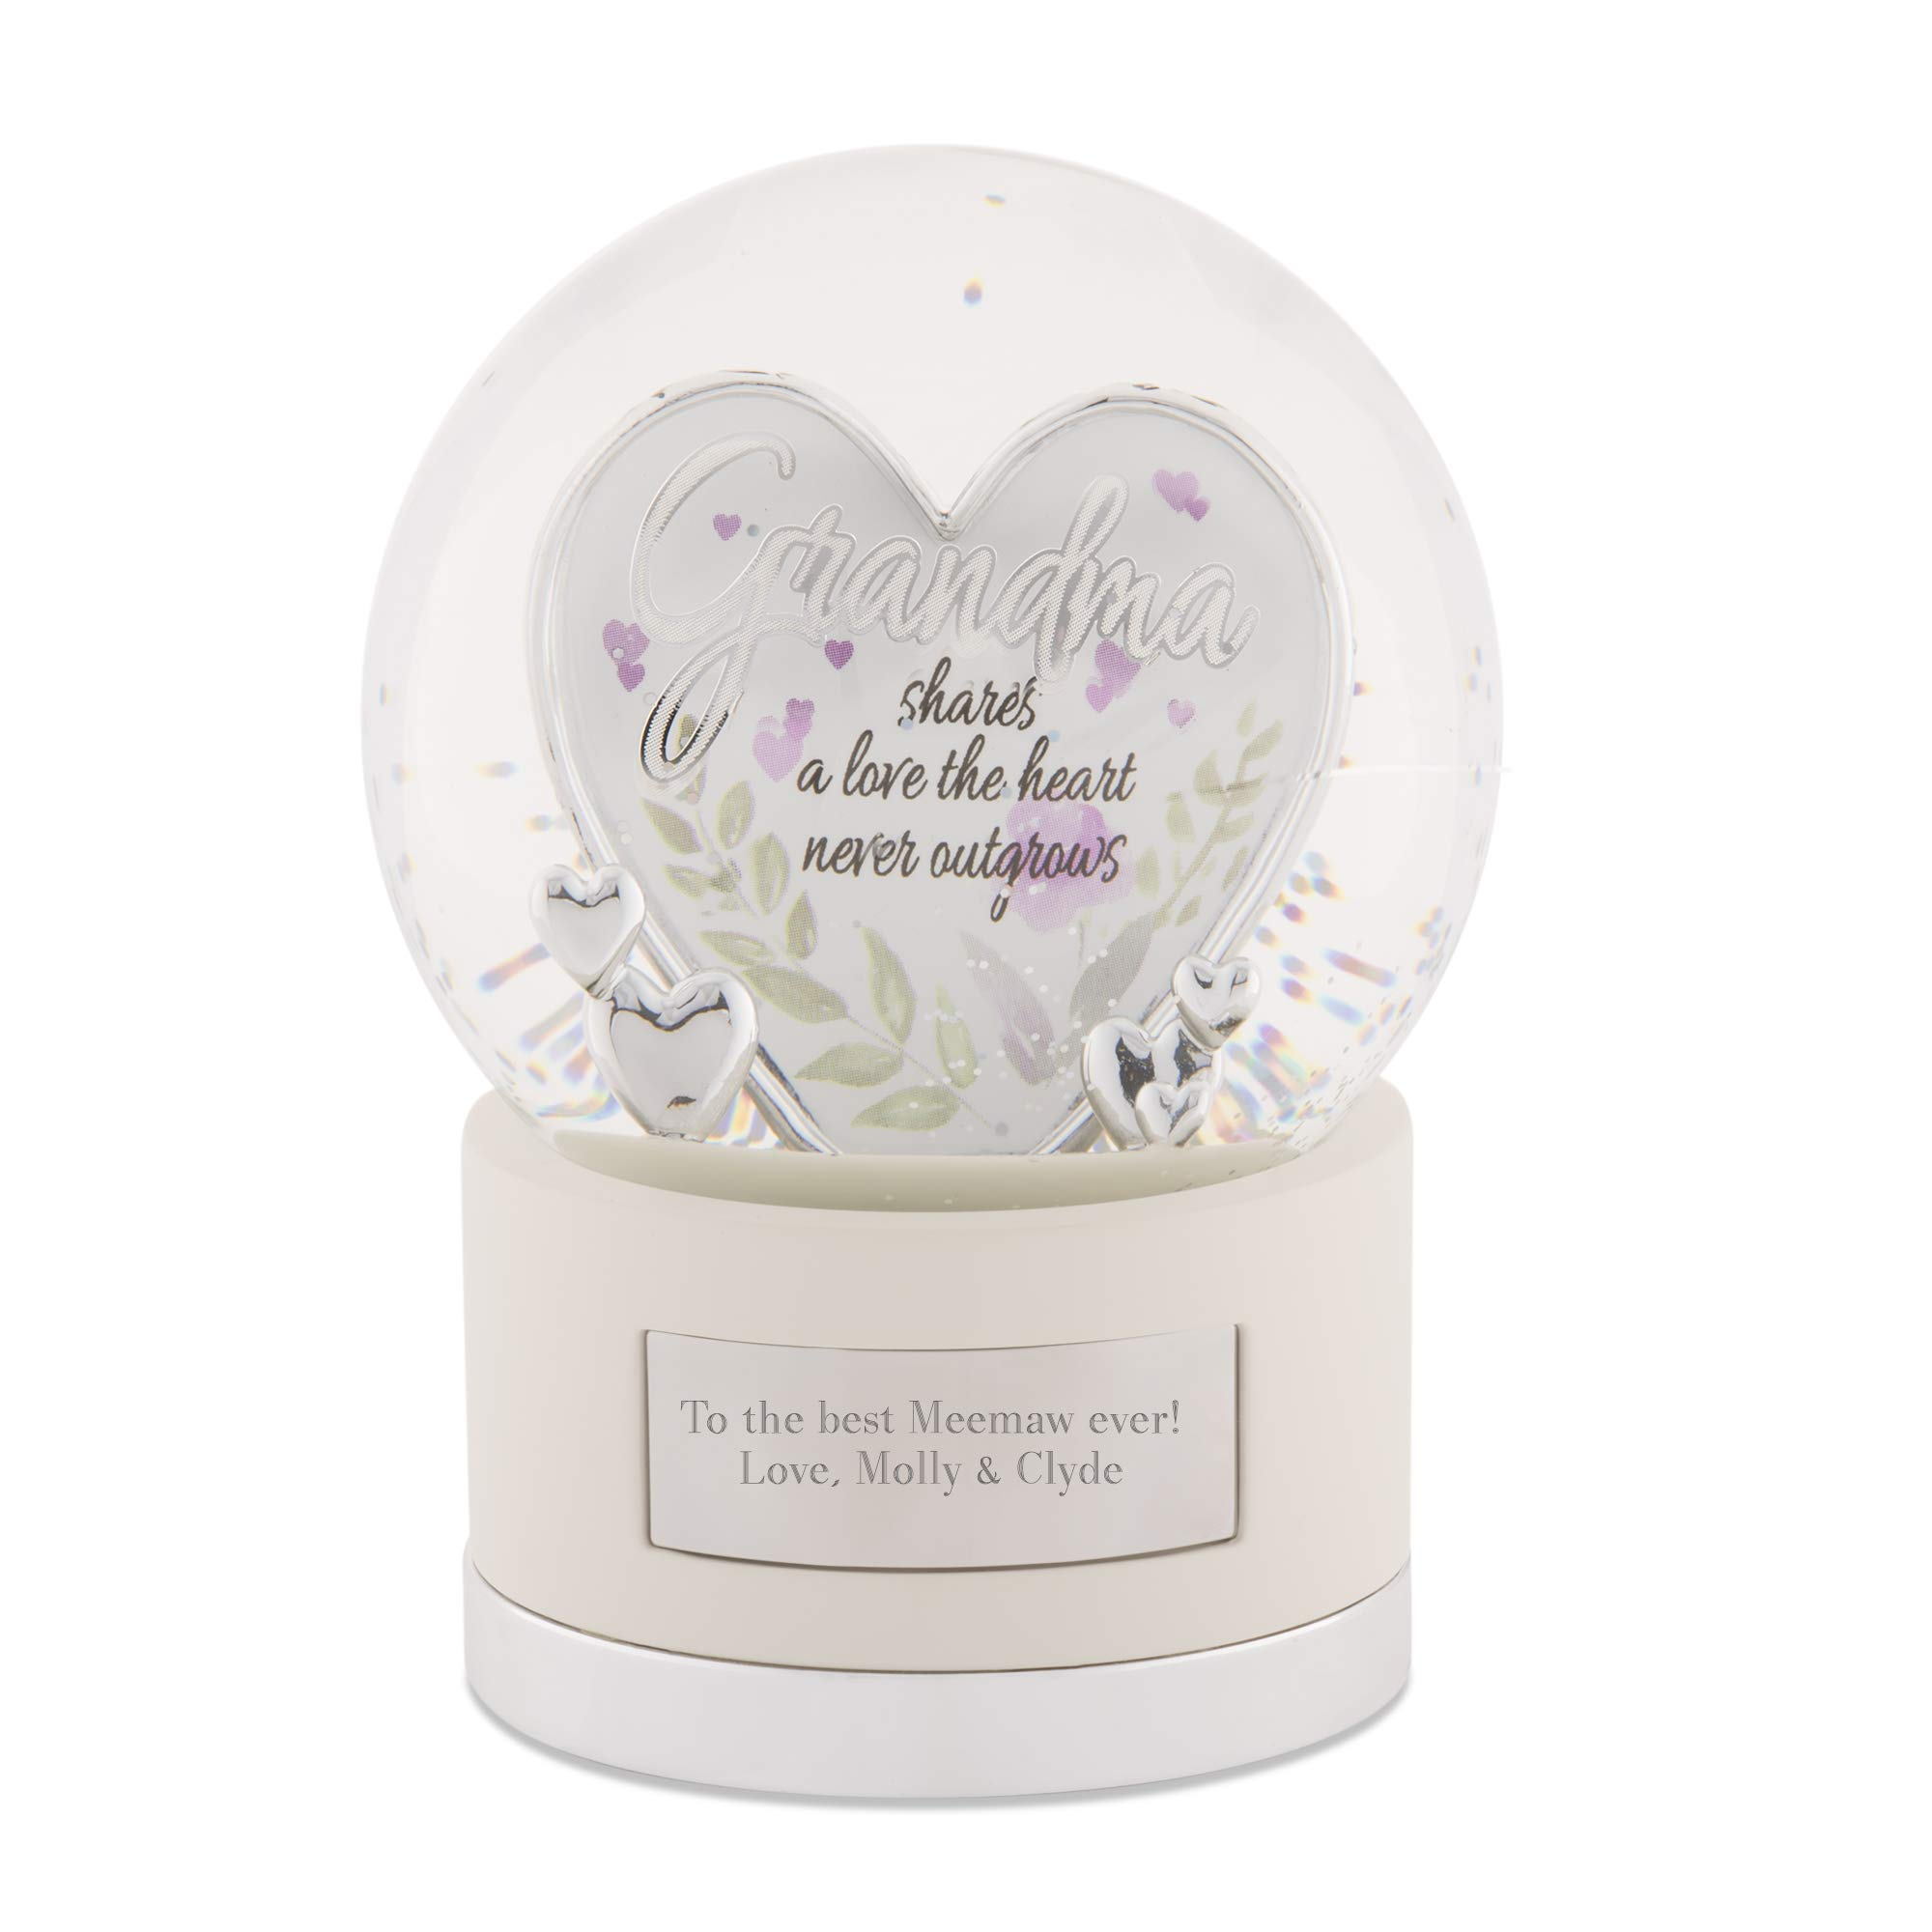 Things Remembered Personalized Silver Grandma Heart Snow Globe with Engraving Included by Things Remembered (Image #1)